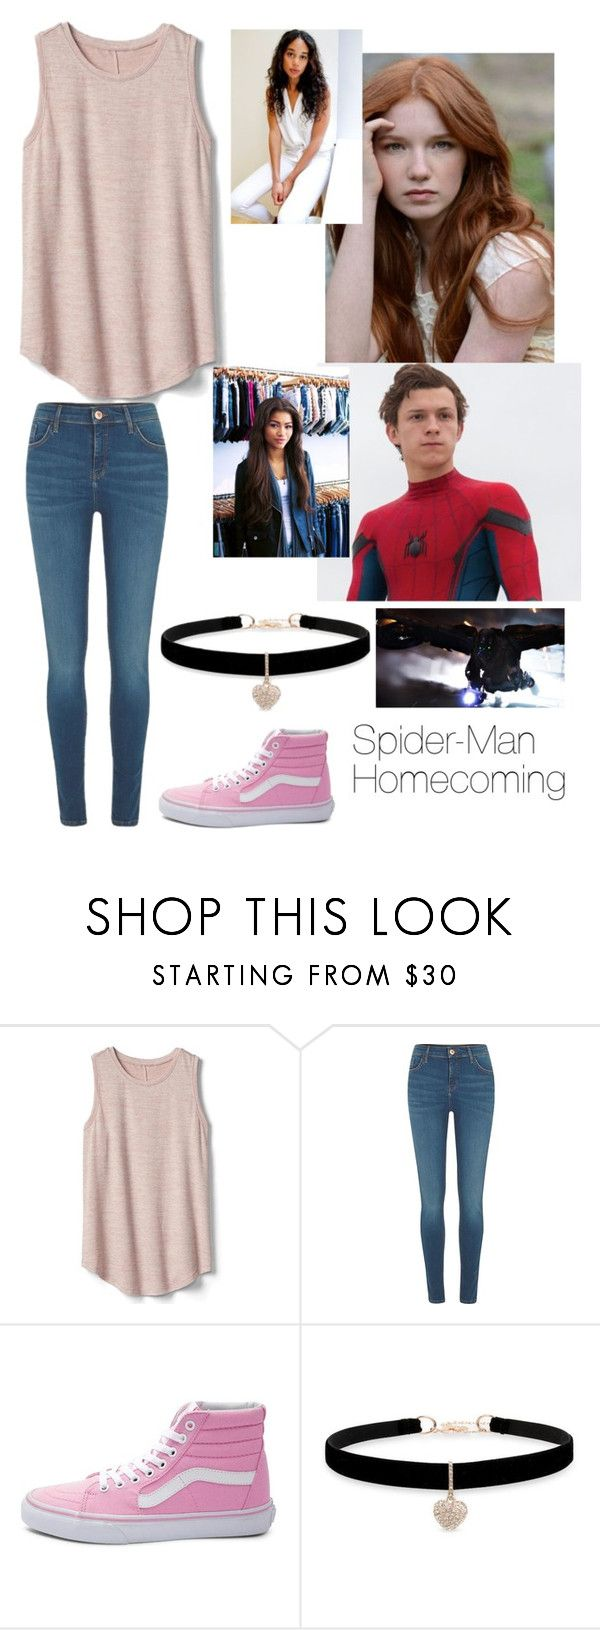 """Spider-Man homecoming fanfic:"" by viola-girl24 ❤ liked on Polyvore featuring Fraternity, Gap, River Island, Vans, Betsey Johnson and Marvel"